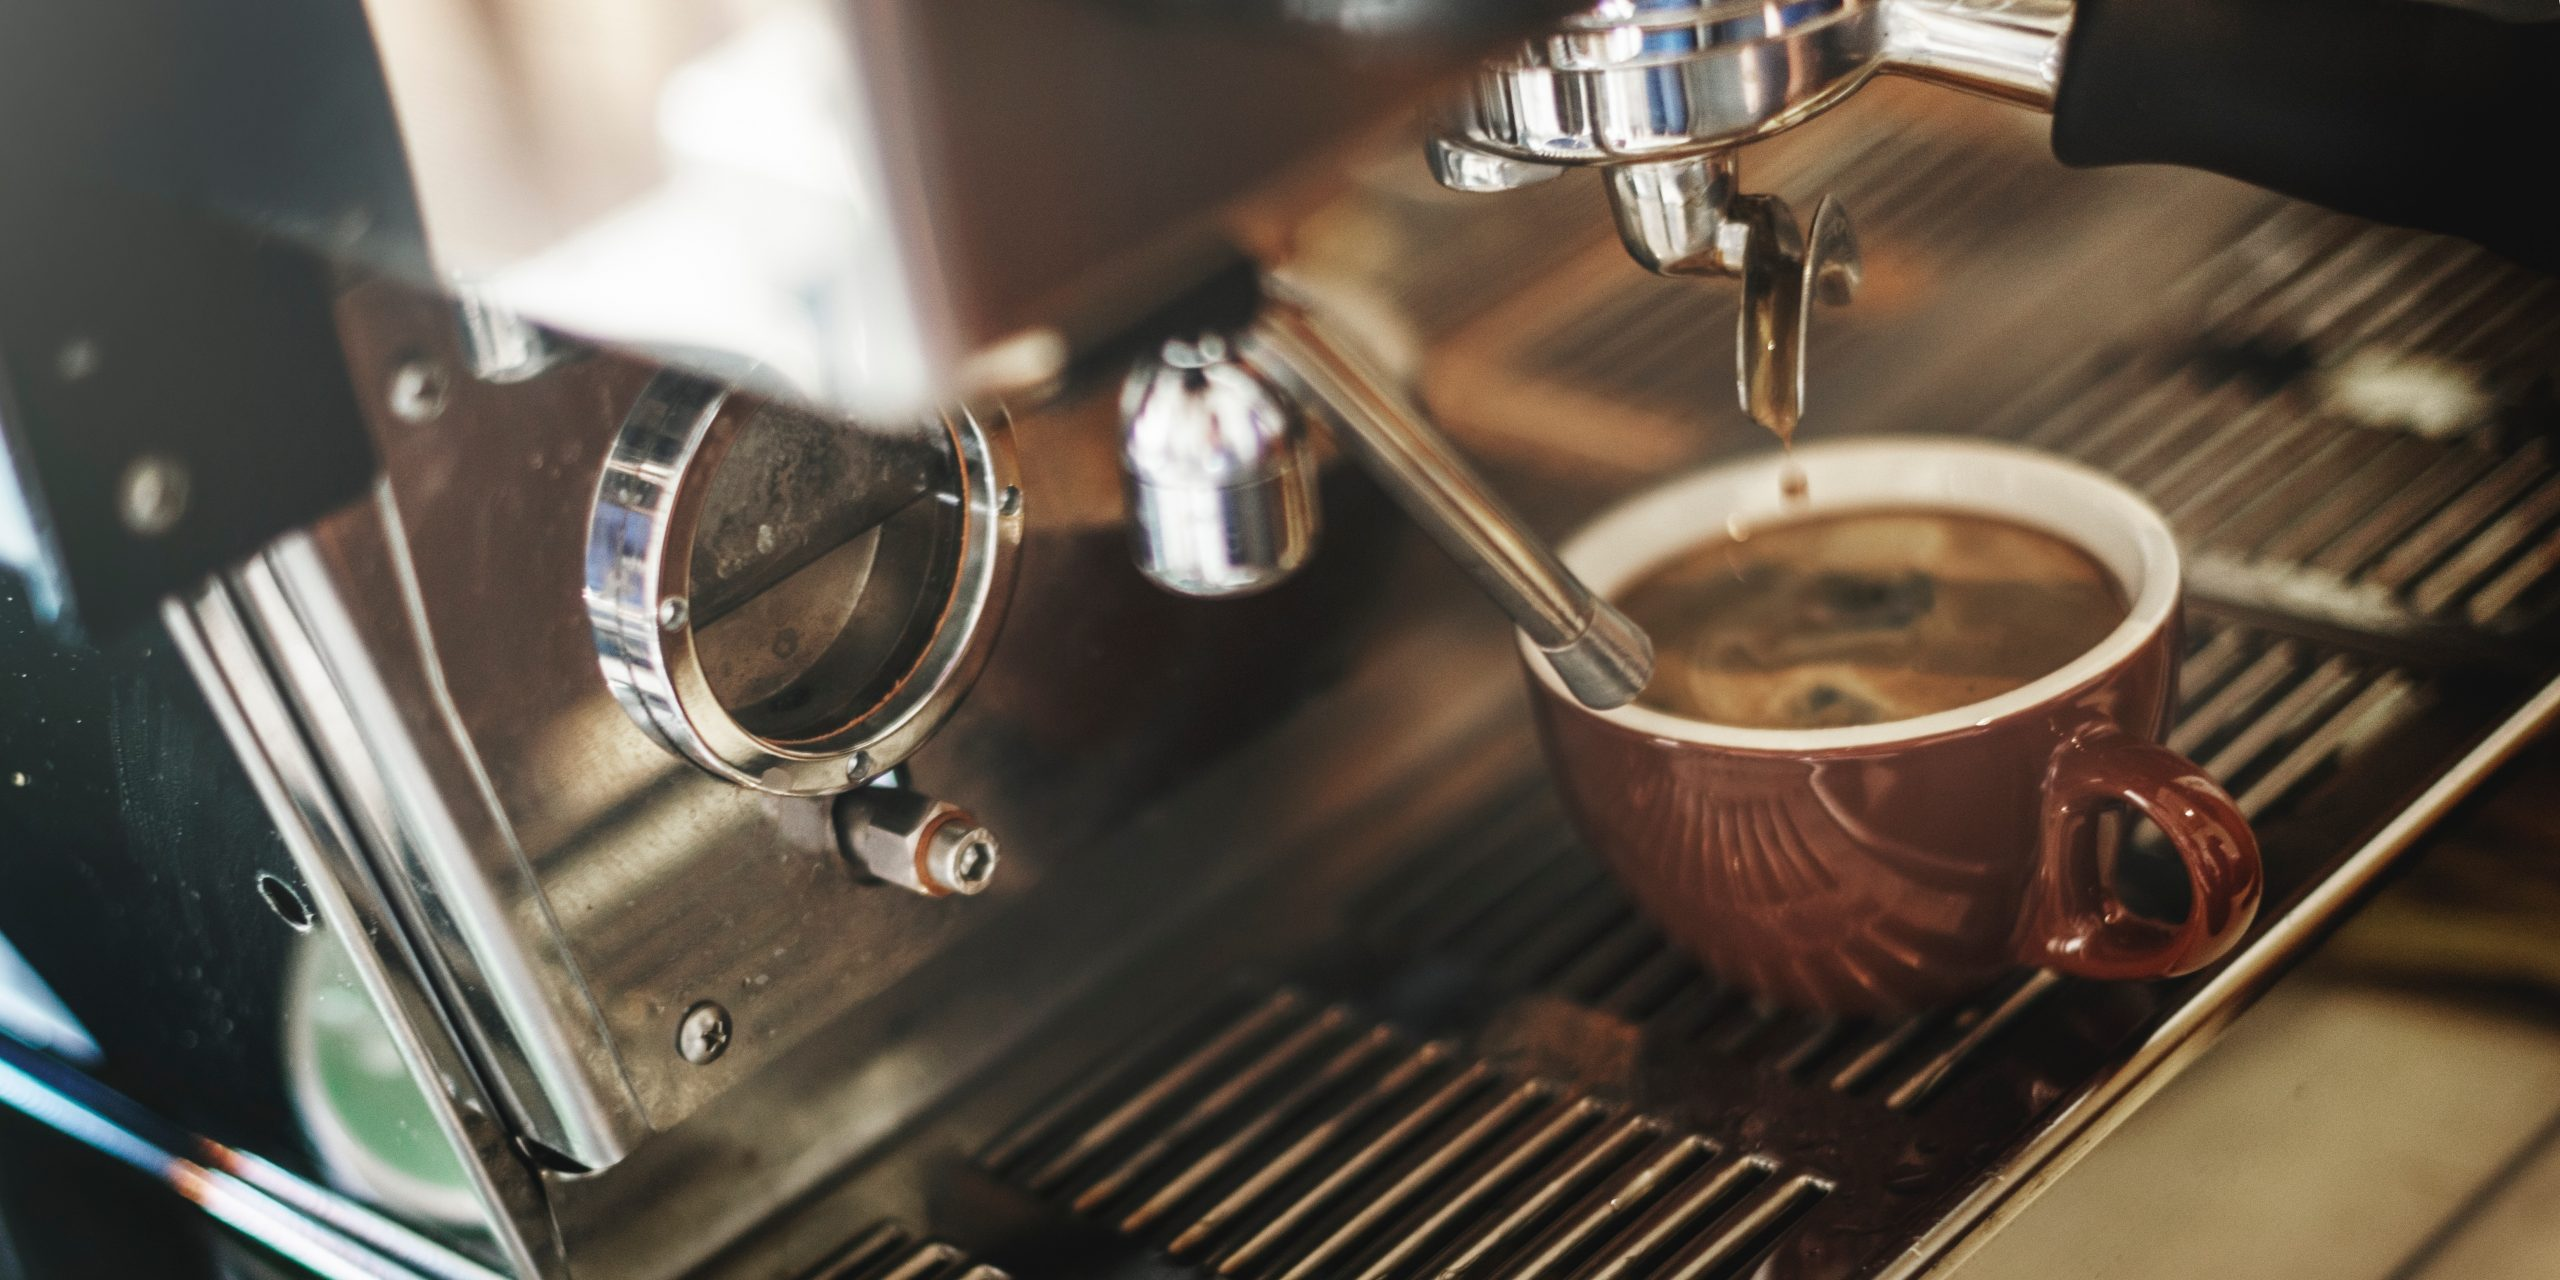 close-up-of-espresso-machine-with-cup-filled-with-coffee